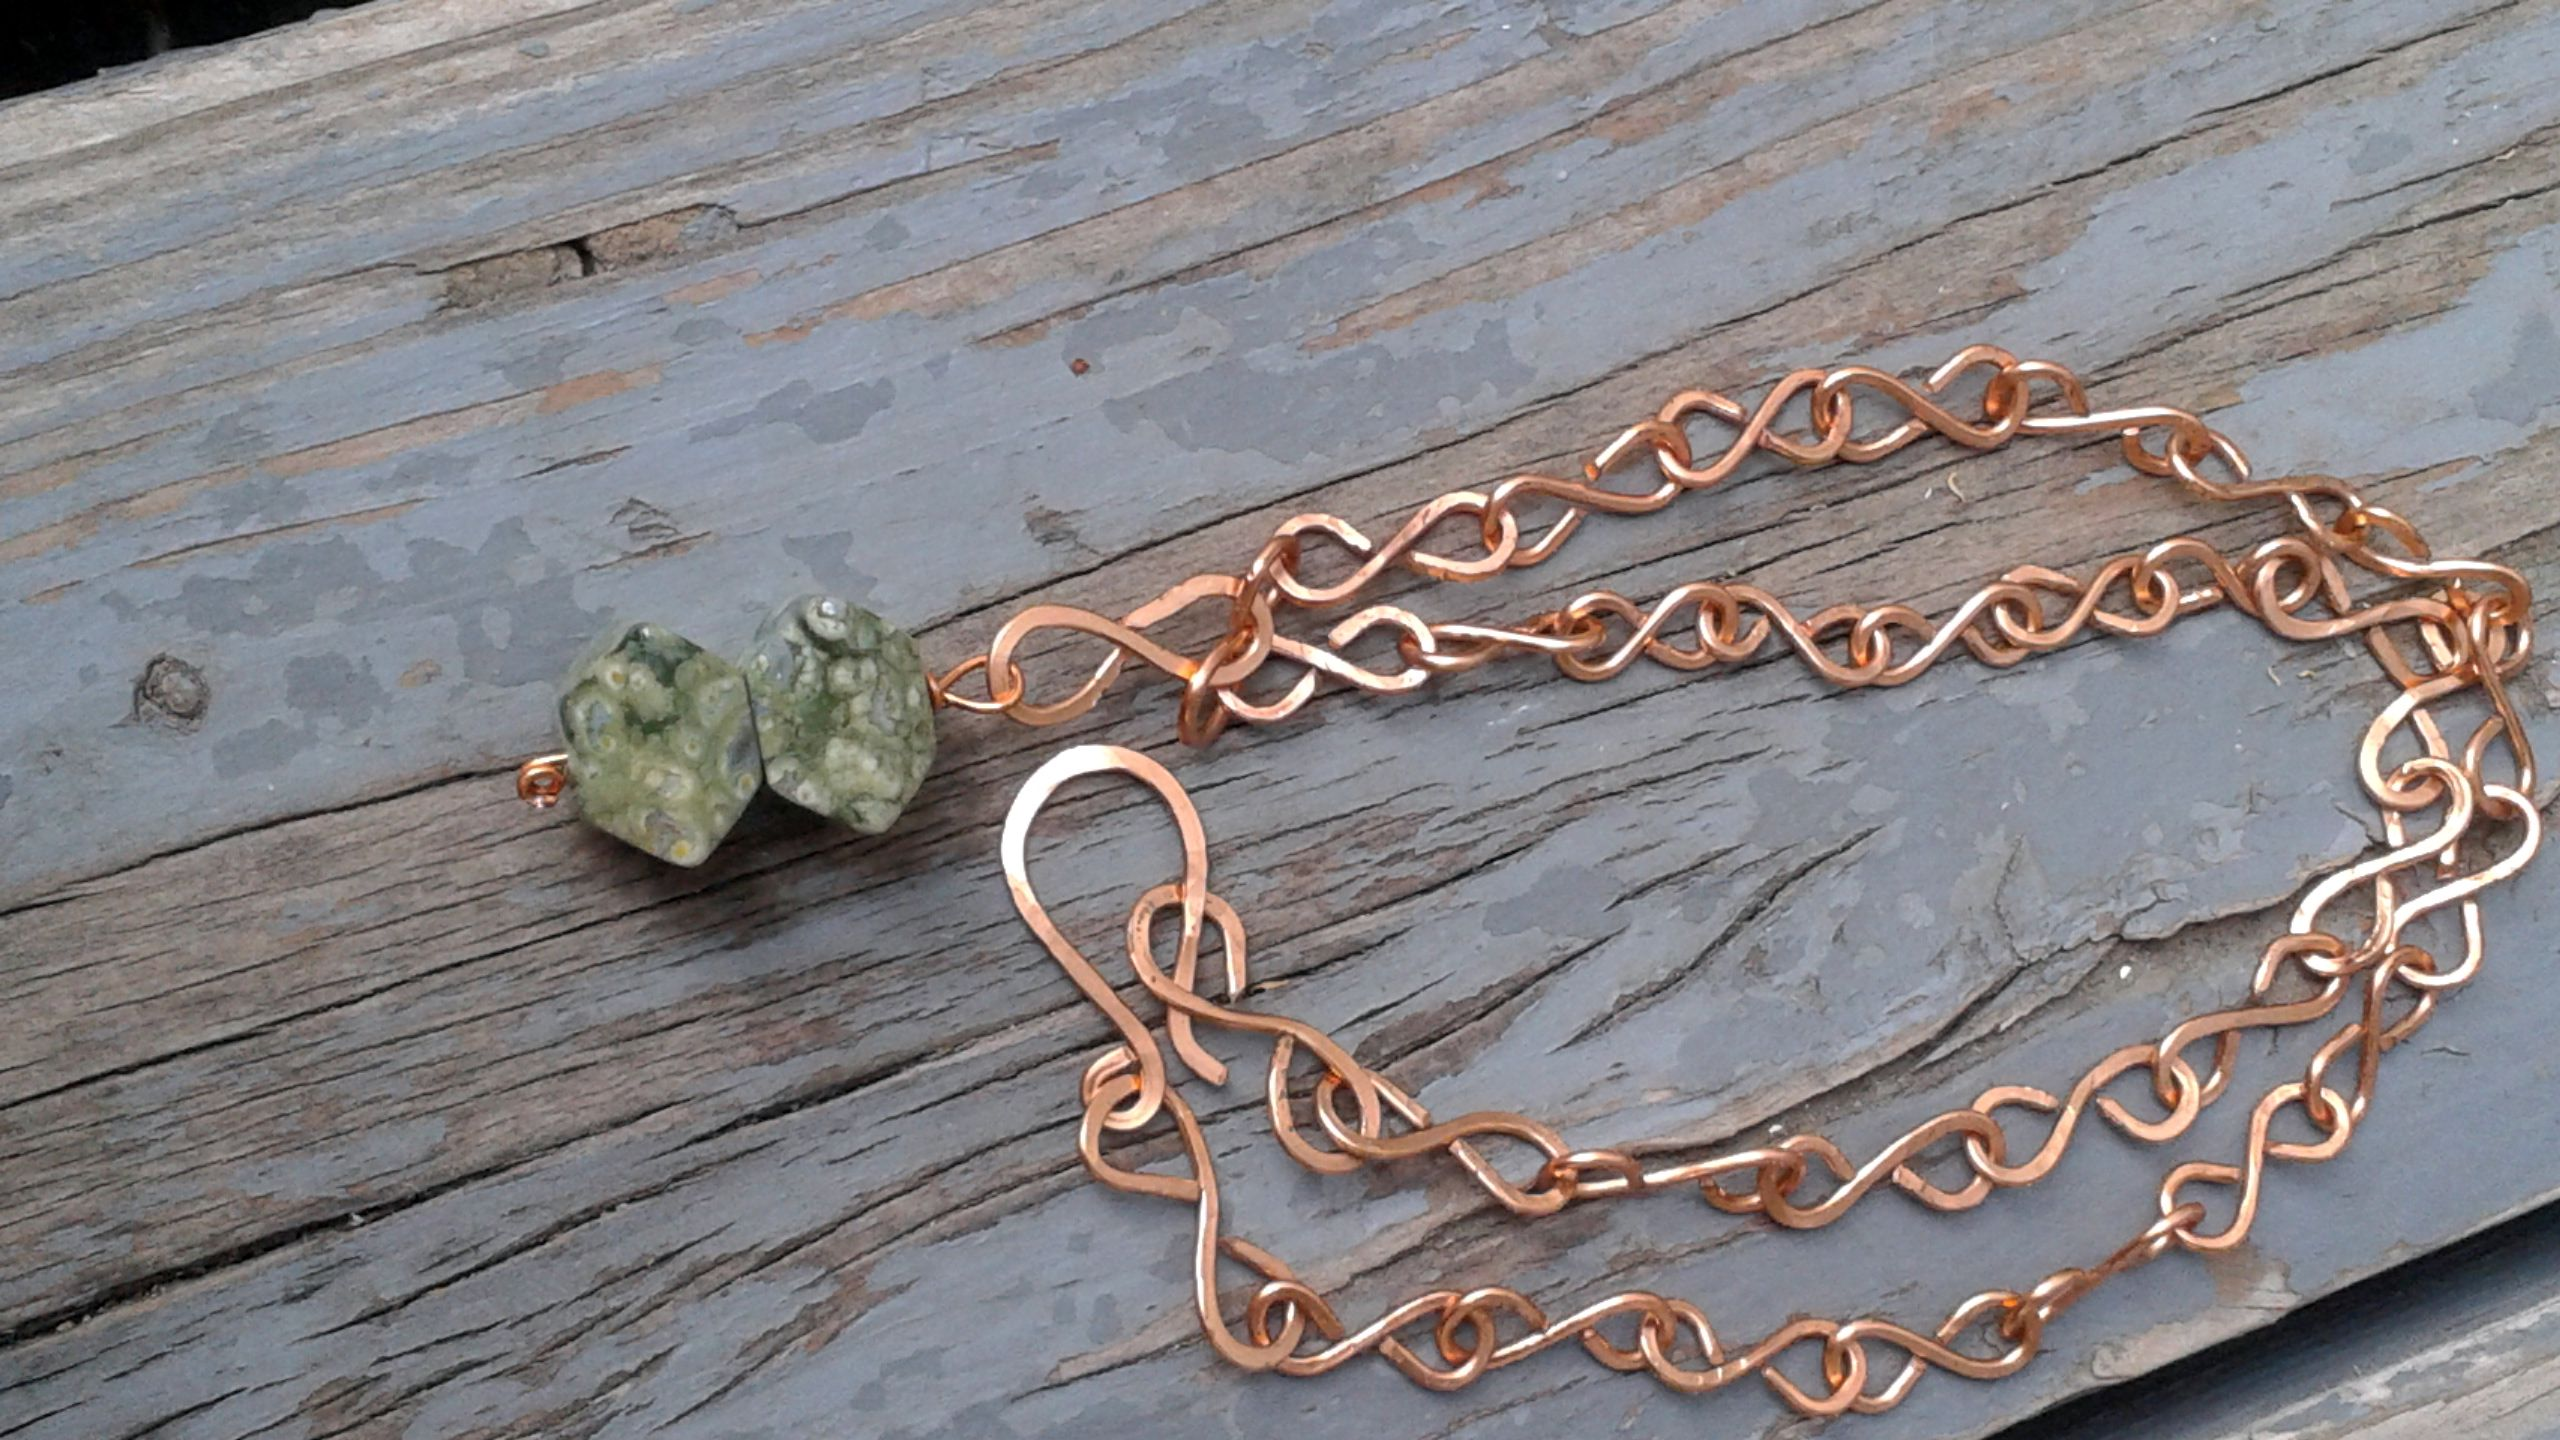 Ryolite and Copper Necklace